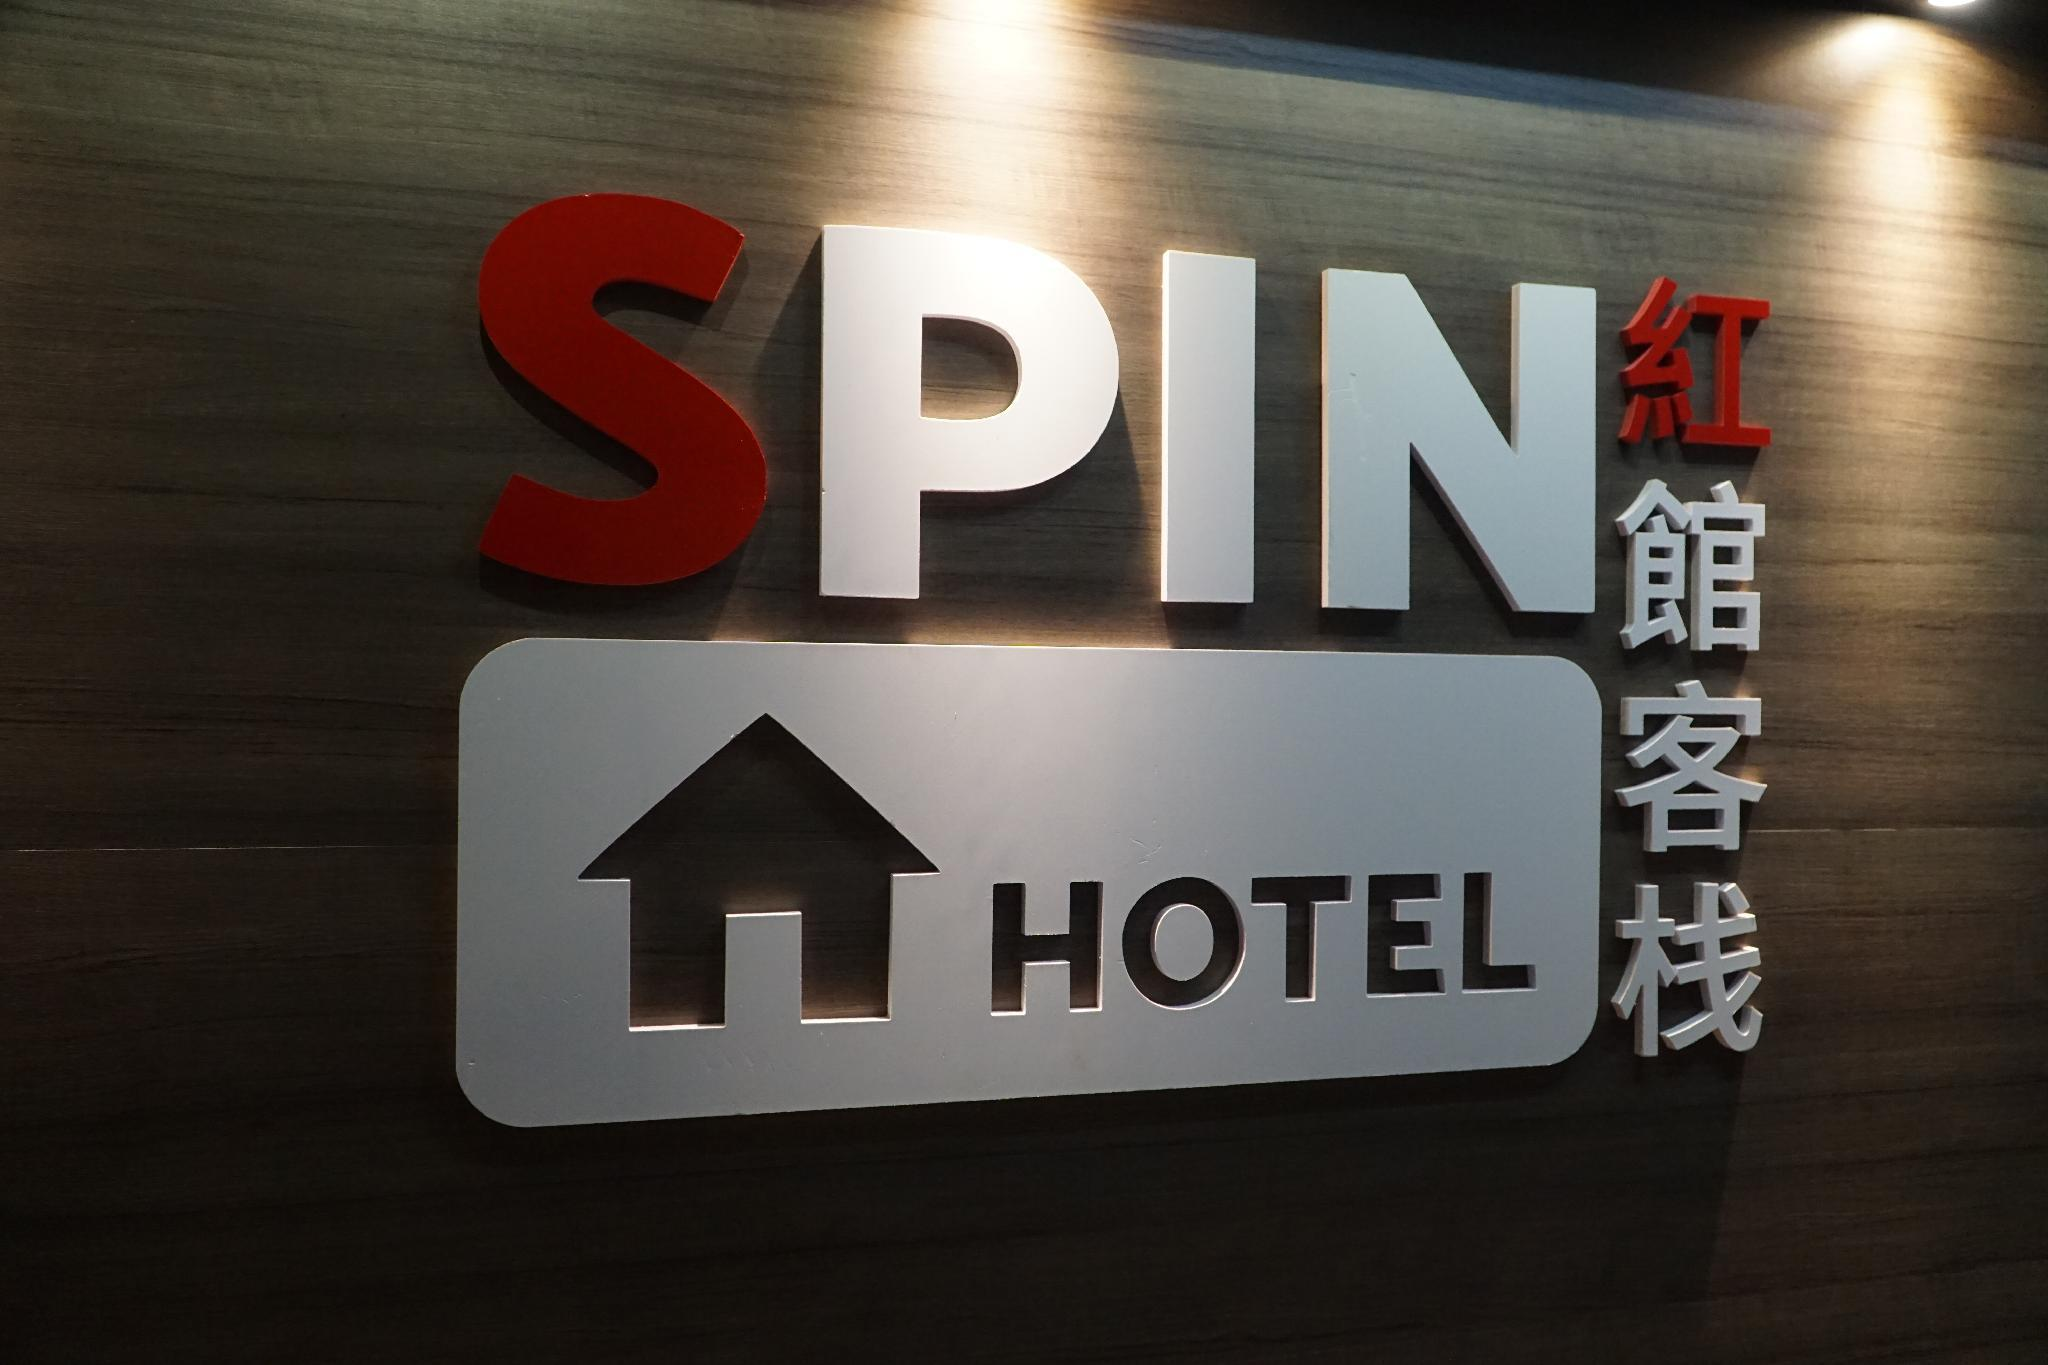 Spin Hotel